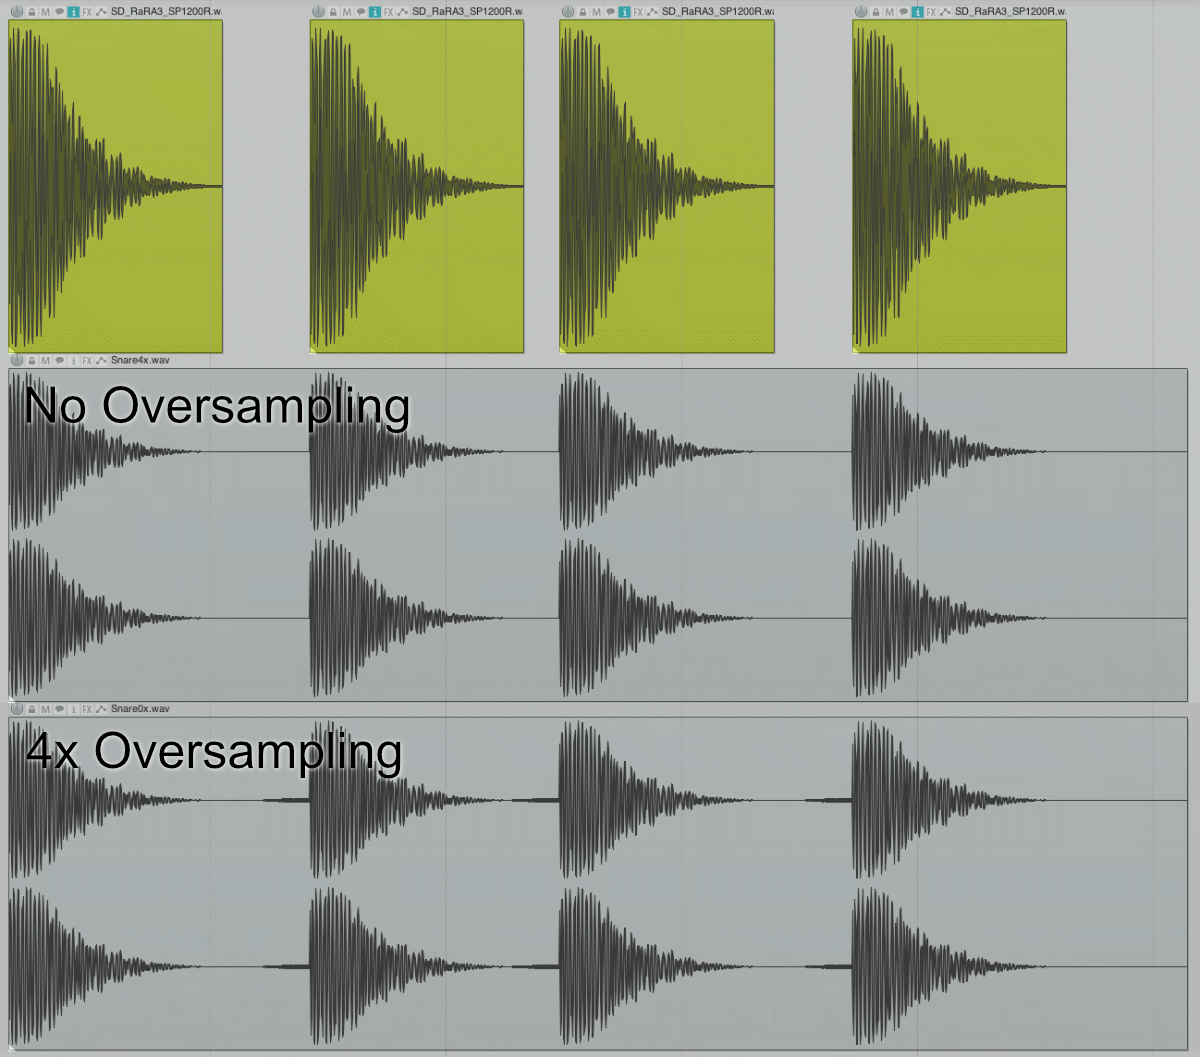 Snare Oversampled